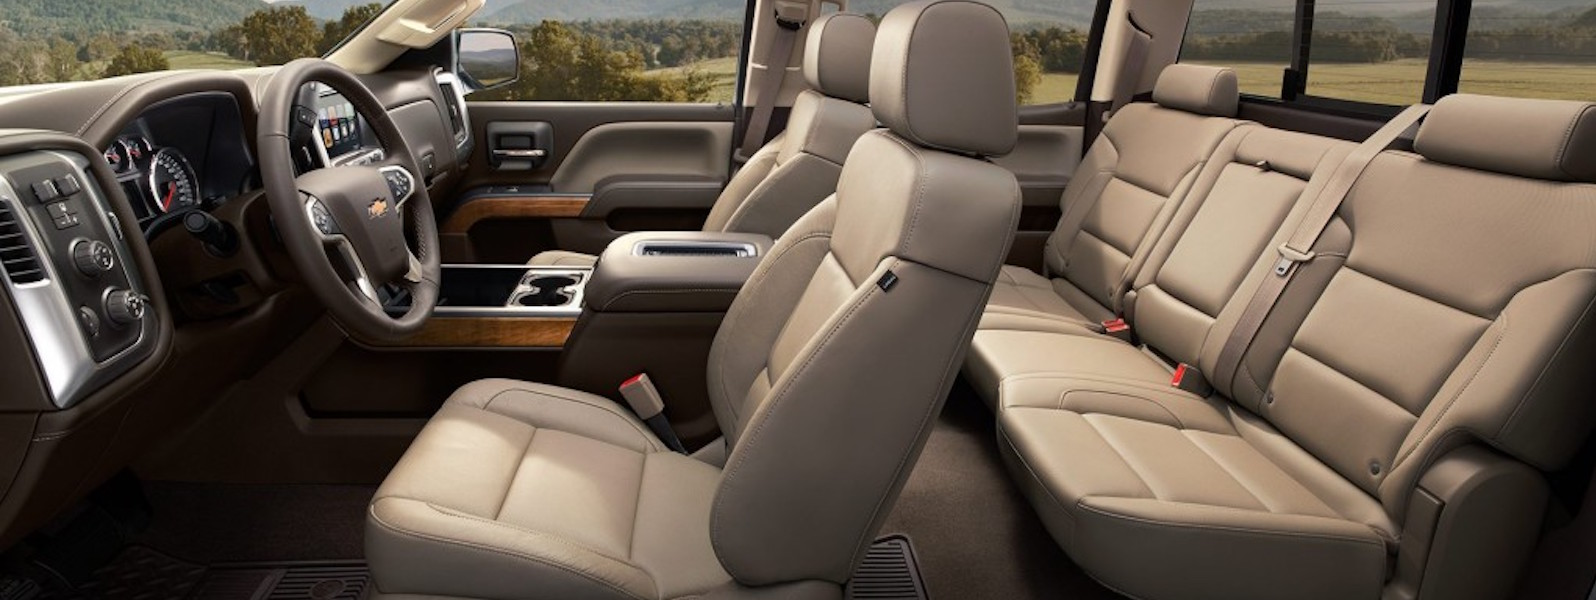 The tan interior of a 2016 Chevy Silverado is shown from the side.